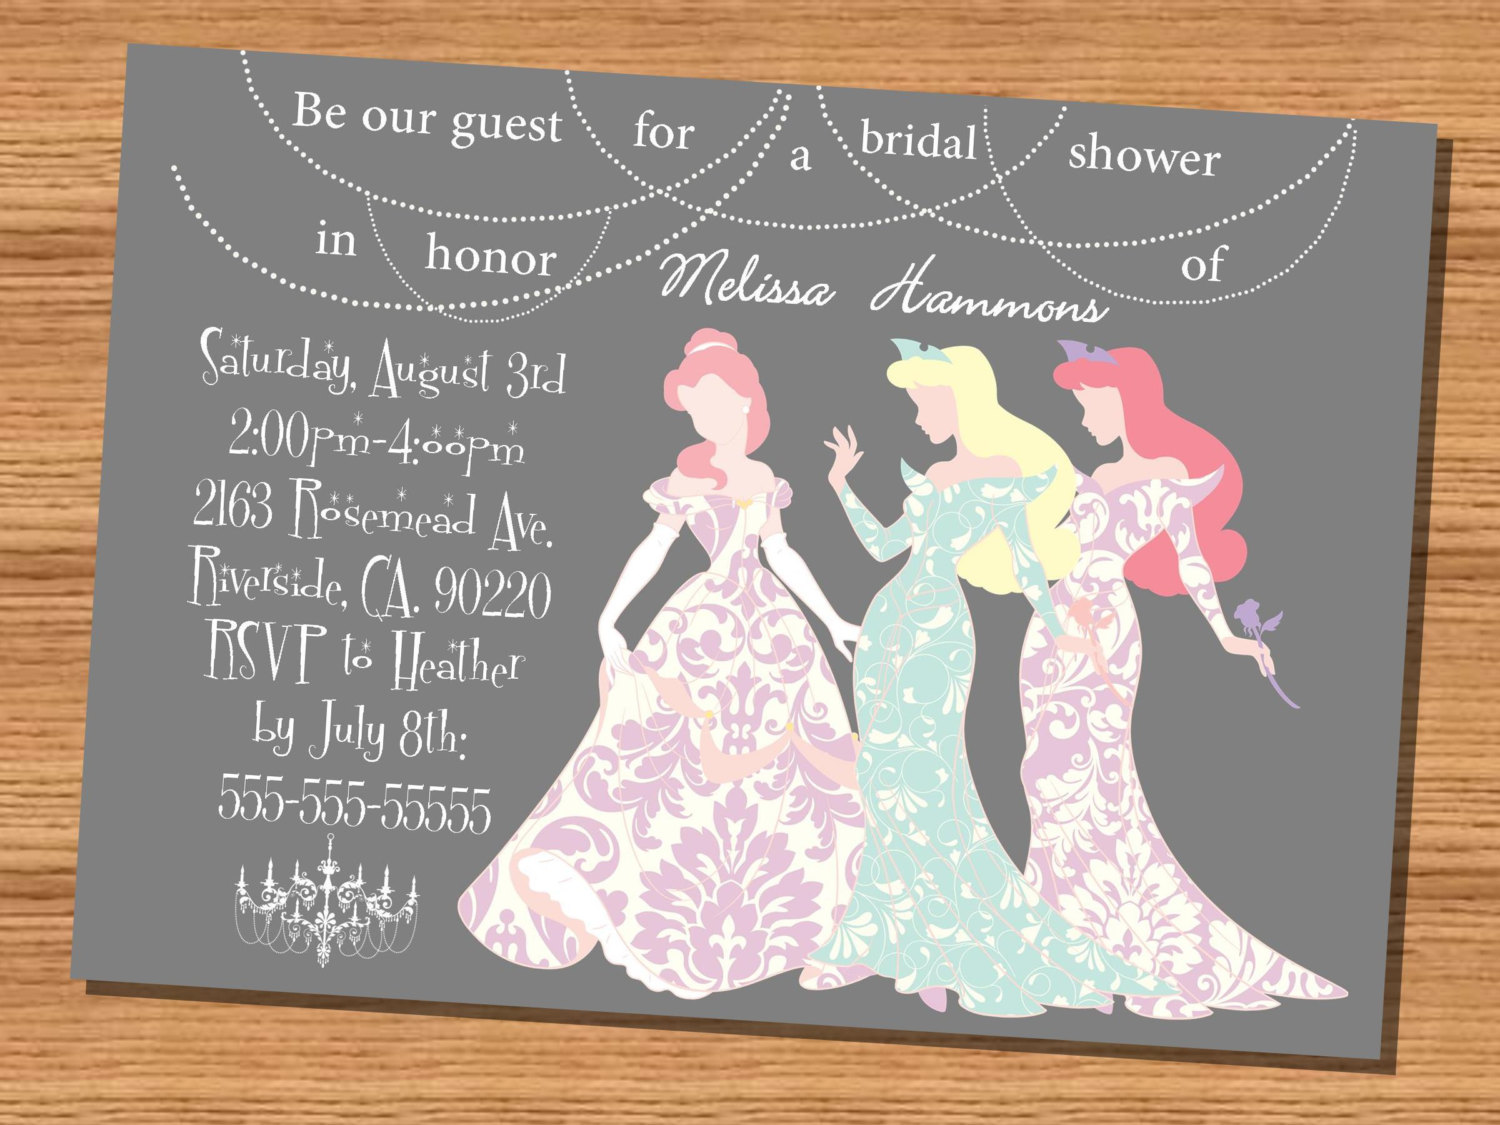 Speaking of Princess theme?.these invites would go along with it ...